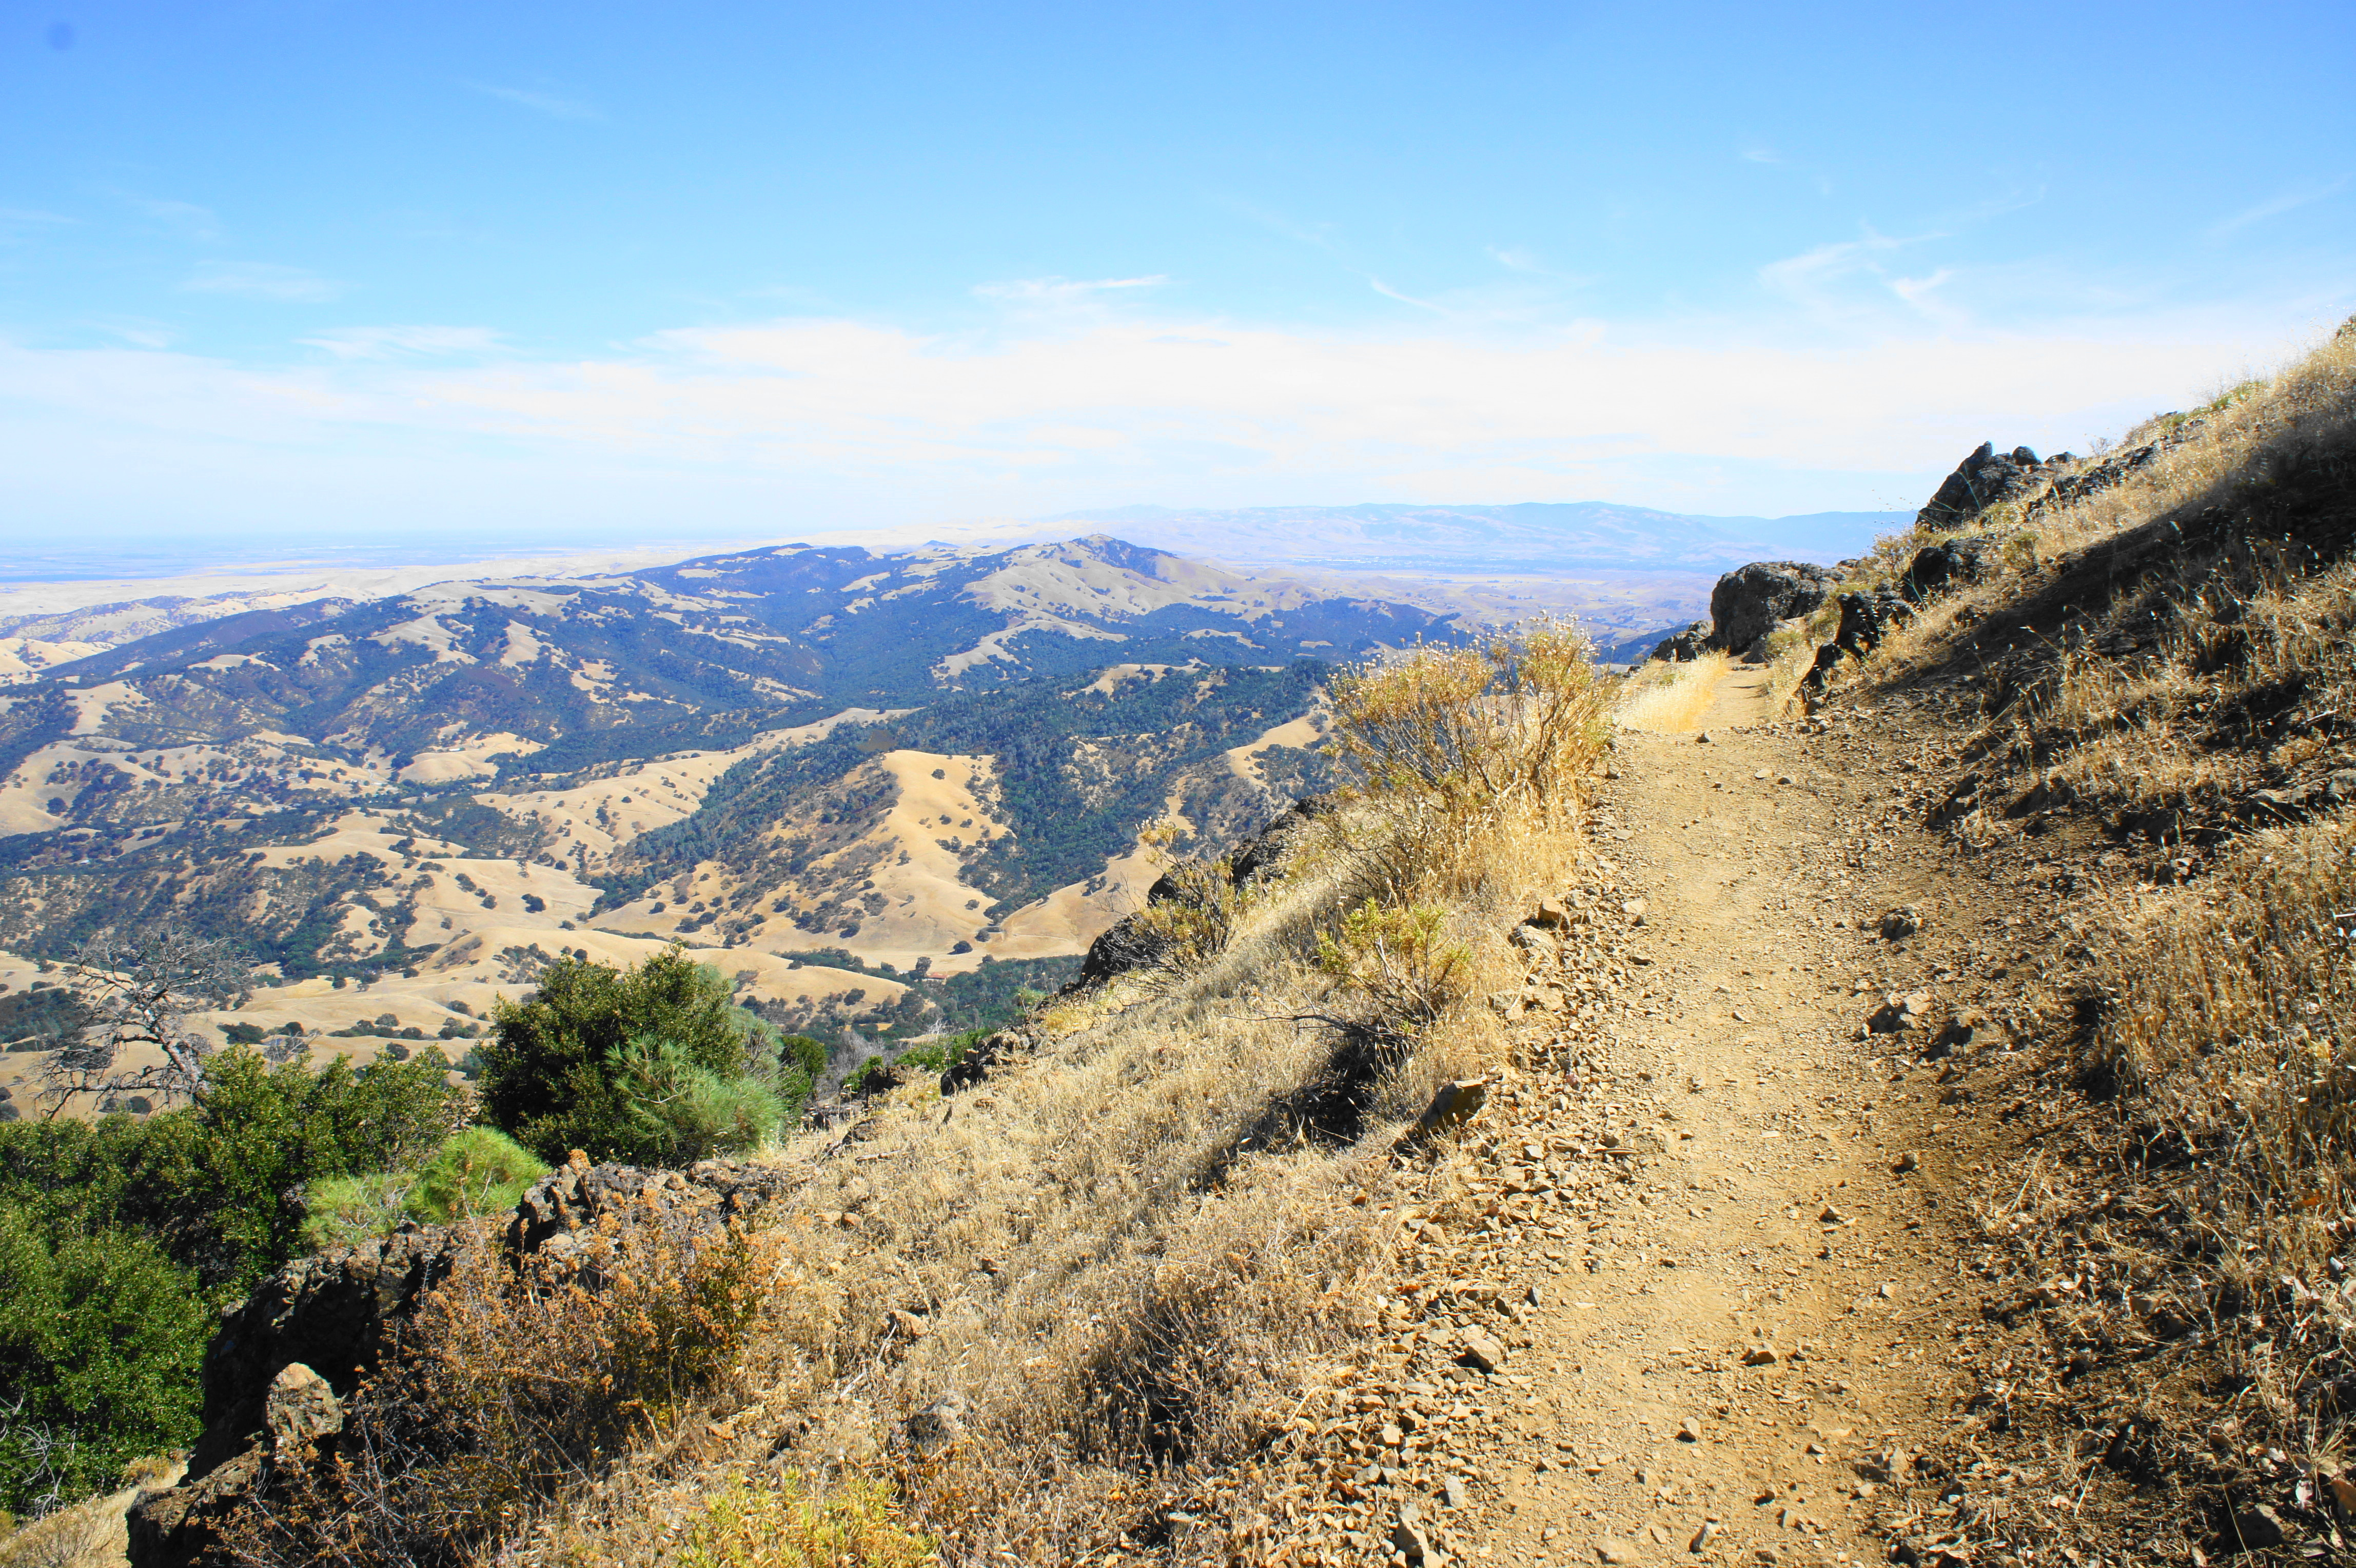 Mount diablo, central and southern california ranges, pacific coast ranges, united states mountain weather forecast for 1173m. Mount Diablo Via Eagle Peak And Mitchell Canyon Mount Diablo State Park Ca Live And Let Hike